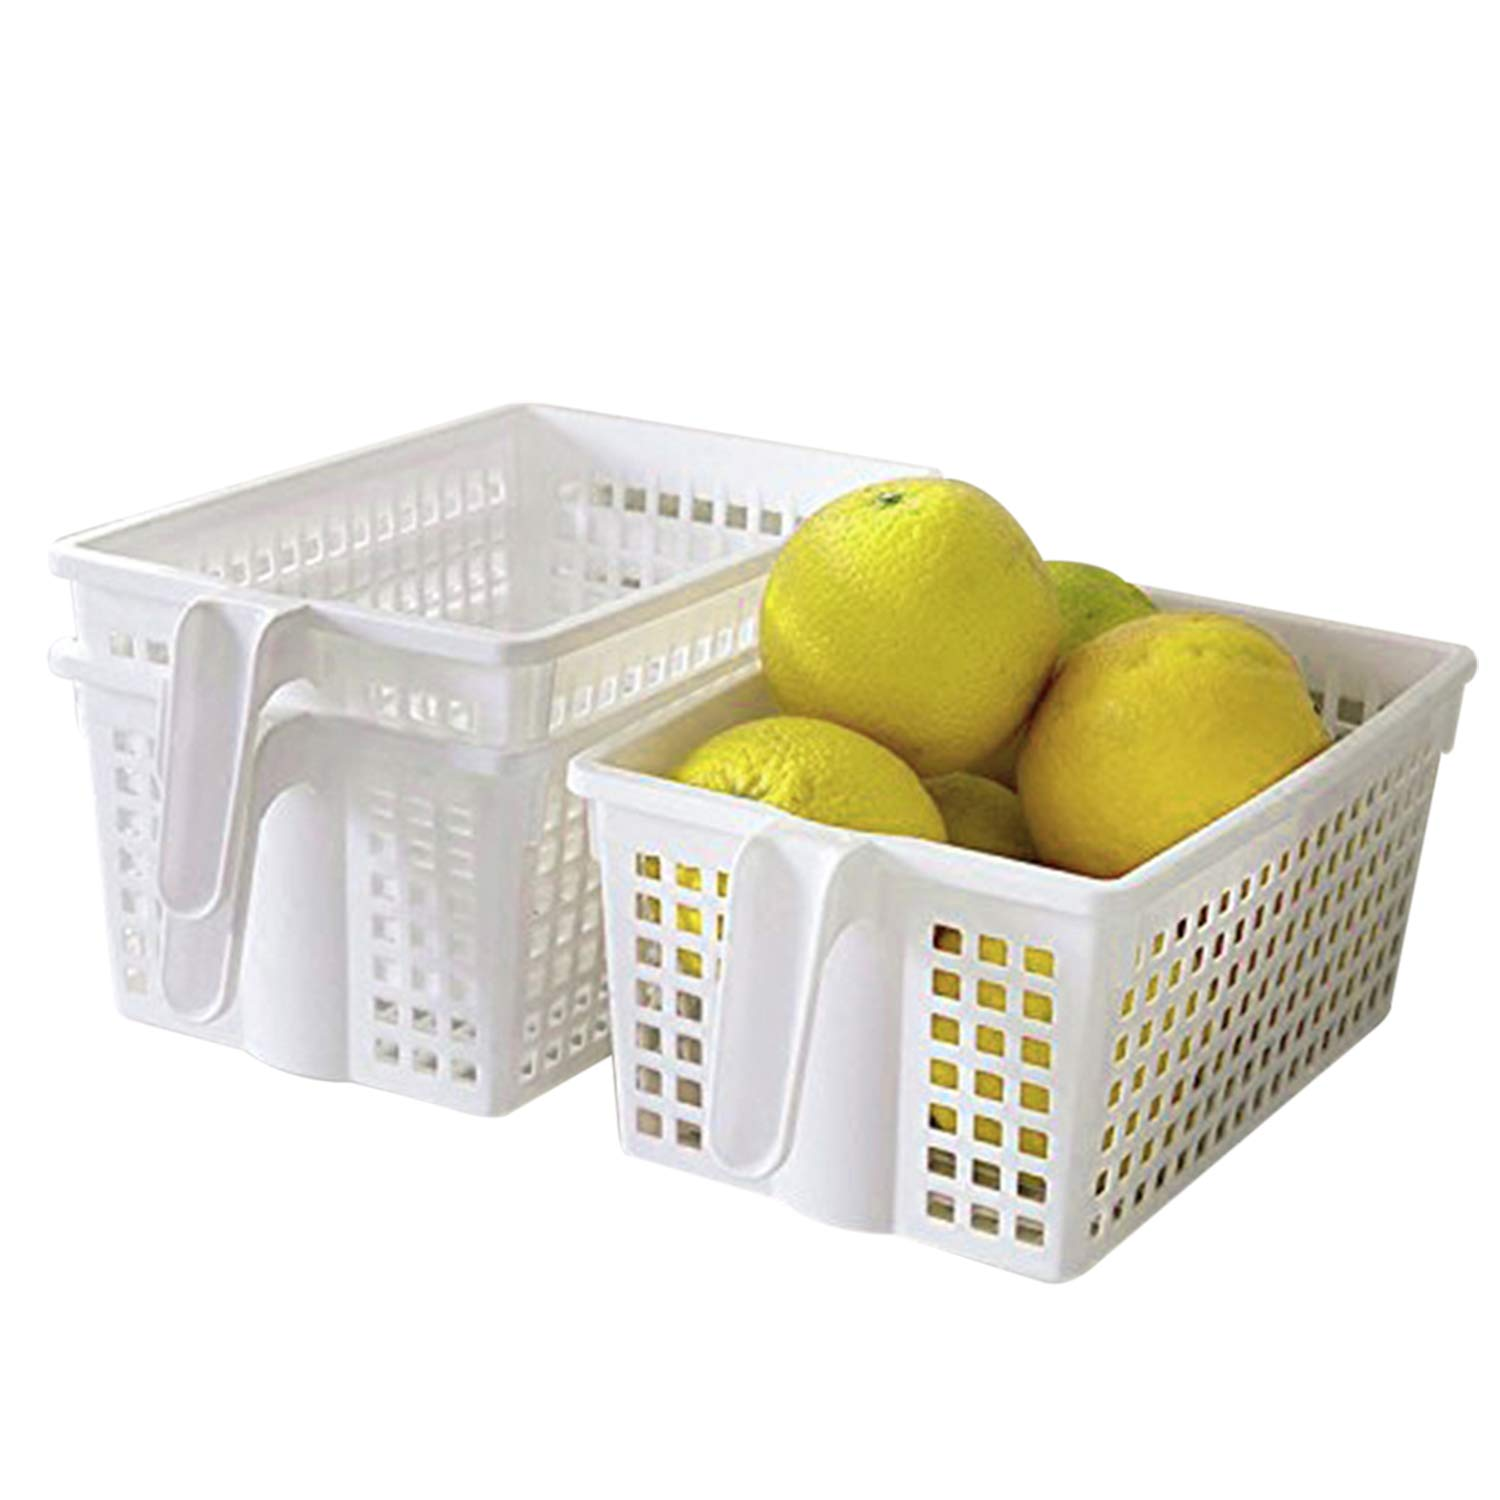 Kurtzy White Handy Storage Baskets/Boxes with handles Pack of 3 - Plastic Kitchen Organizers - Stackable Shelf Baskets for Bedroom, Office, Wardrobe, and Bathroom Containers 21x13x11 cm MA-4013